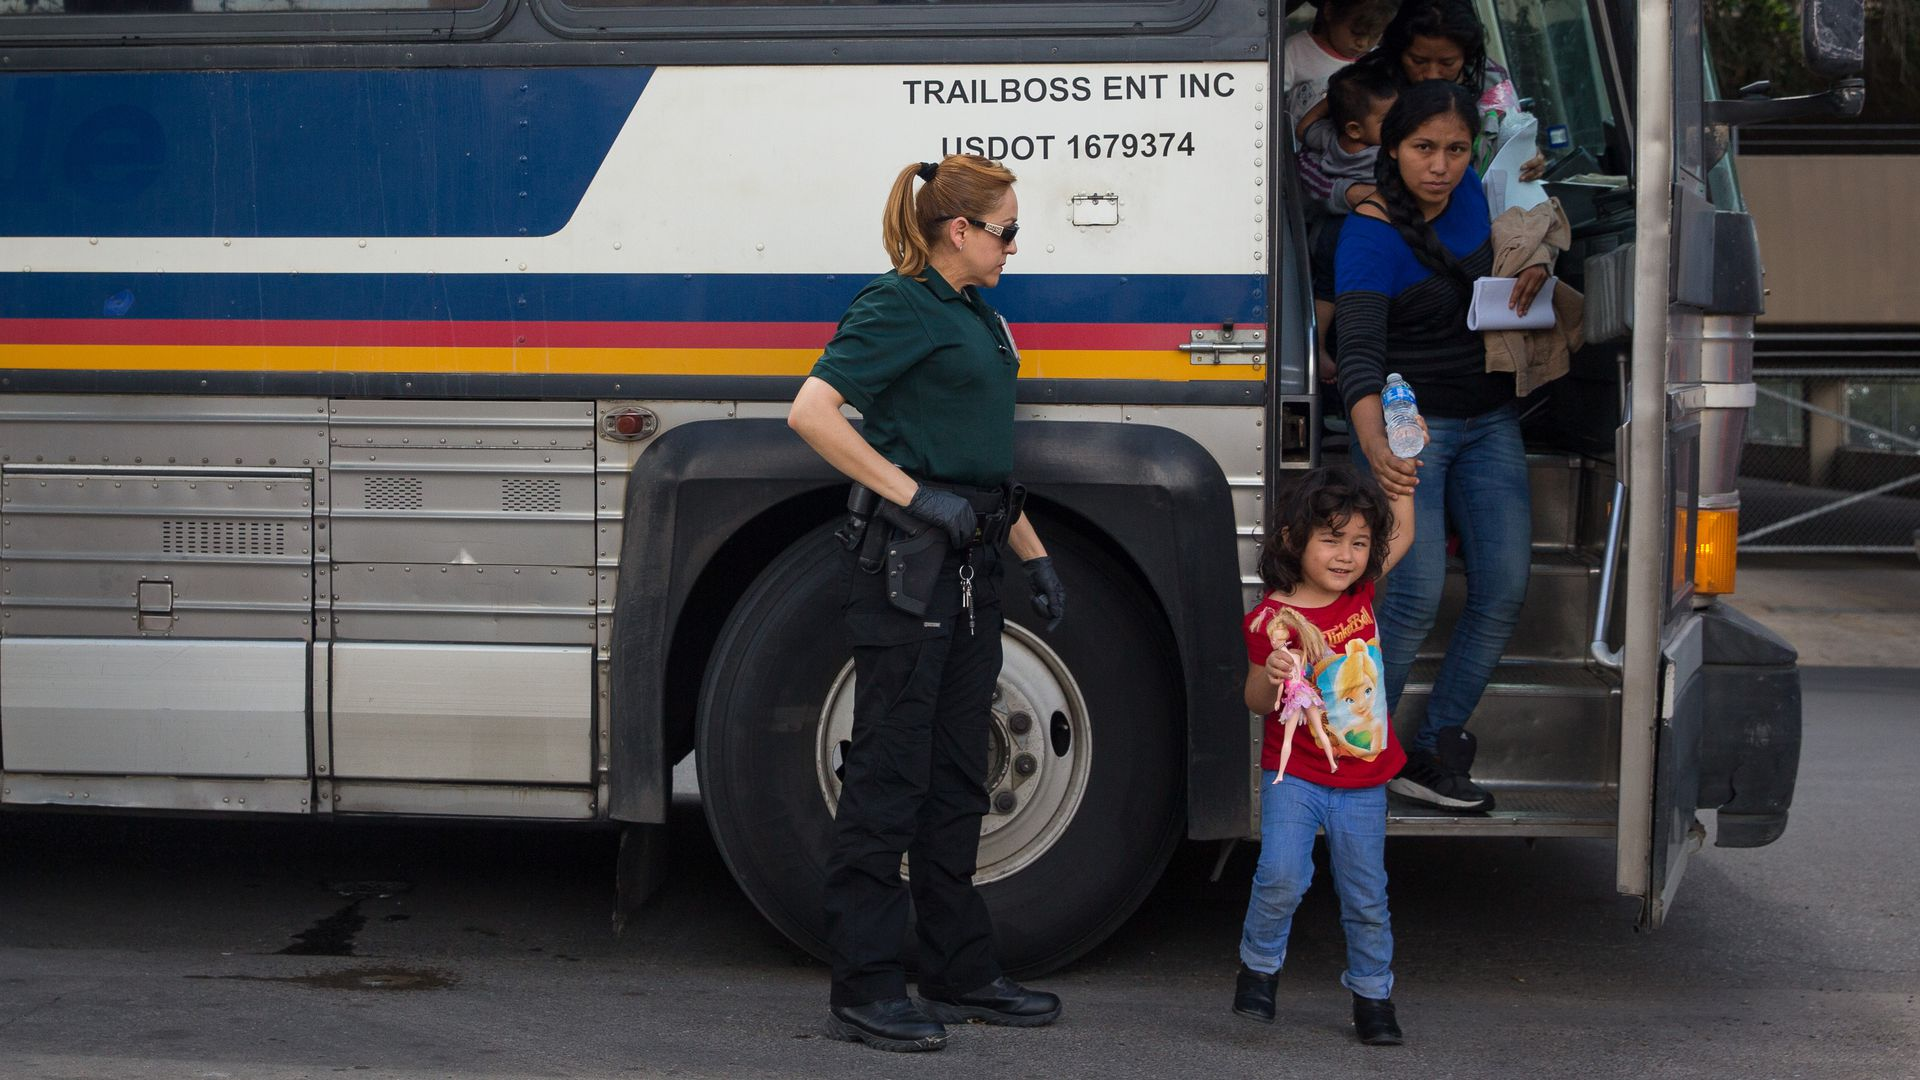 In this image, a young girl steps off a bus with her mother holding her hand while carrying another child. A guard watches.